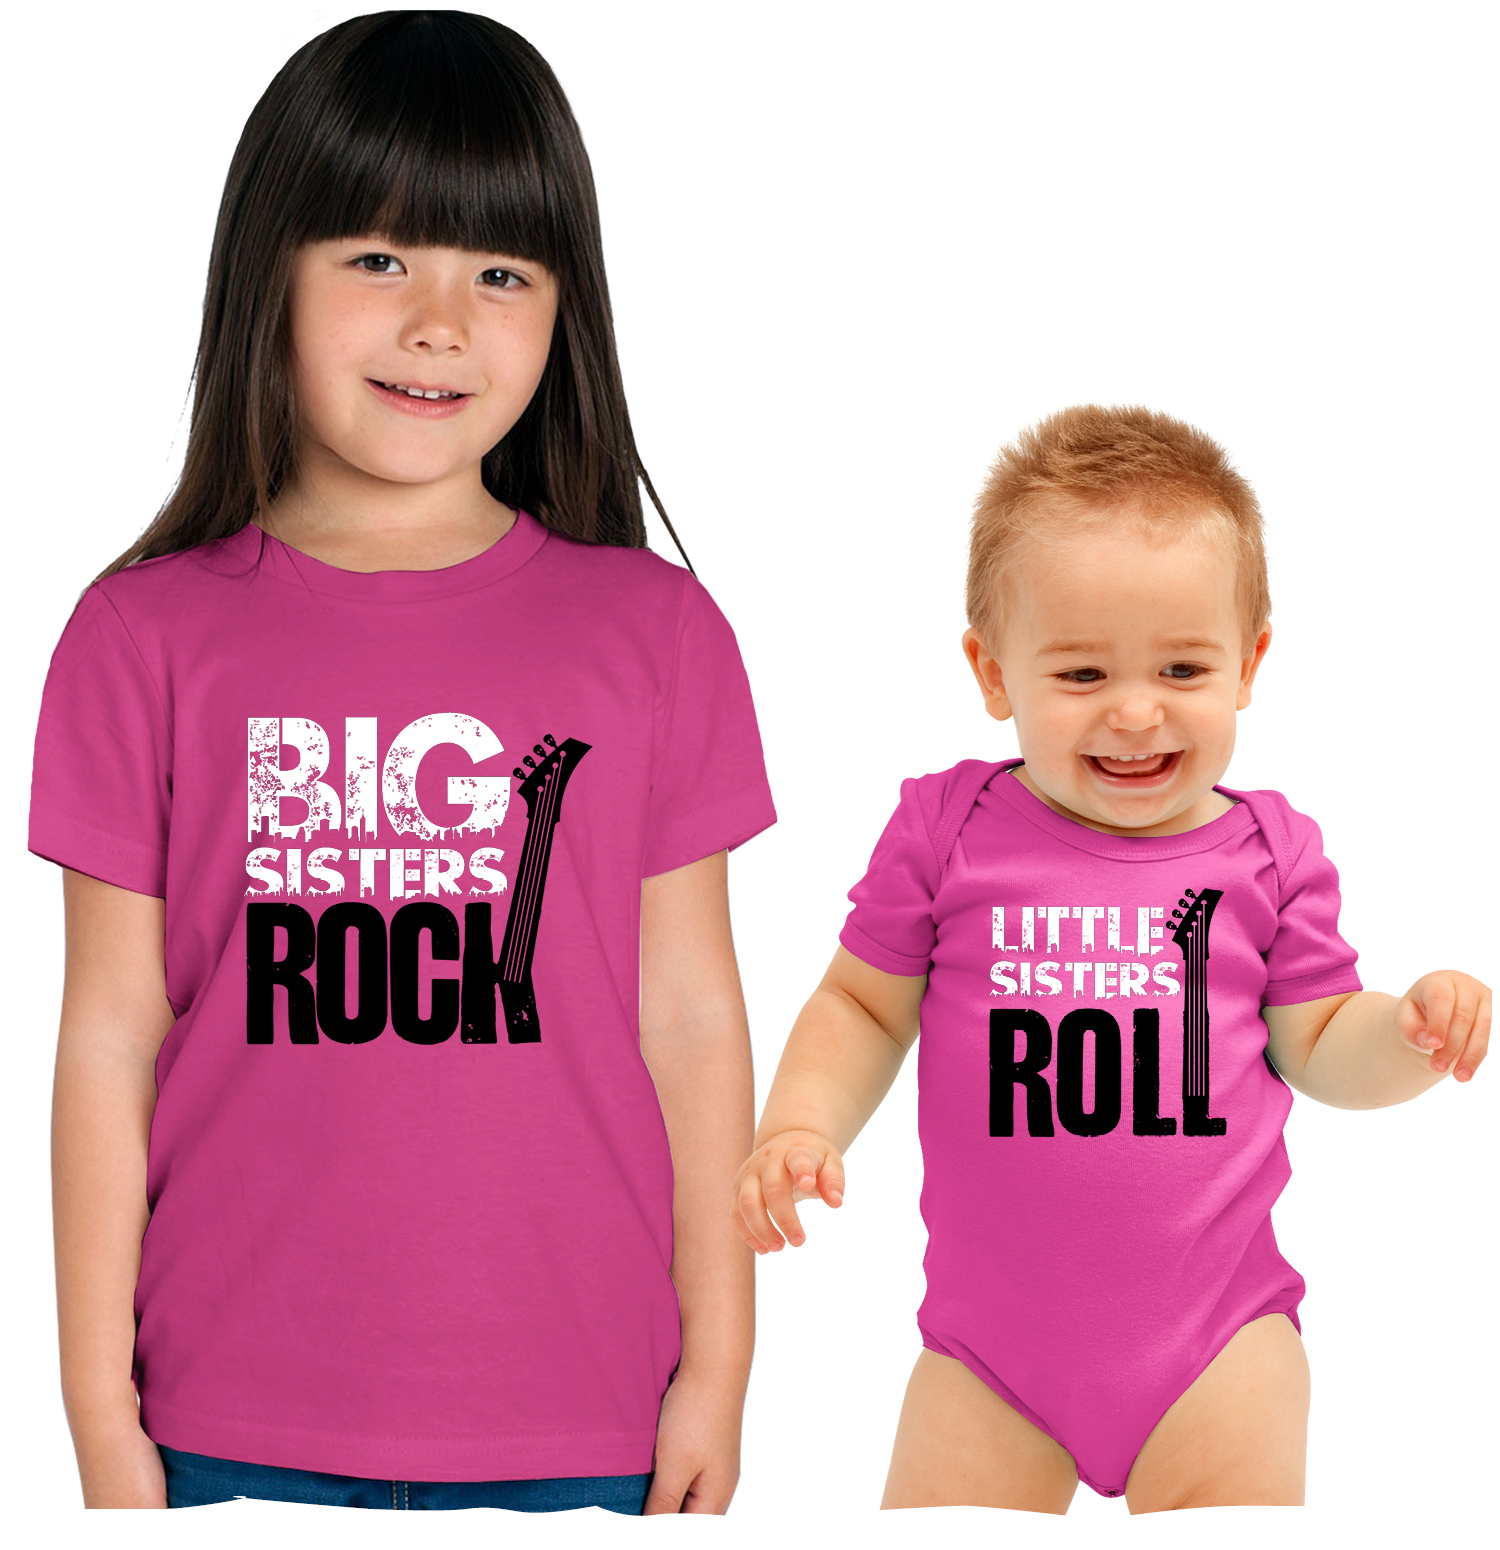 Nursery Decals And More Nursery Decals And More Big Sister Little Sister Matching Outfits Big Brother Christmas Shirt Big Sisters Rock Little Sisters Roll Big Sibling 14 16 Lil Sibling 6 12m 6m